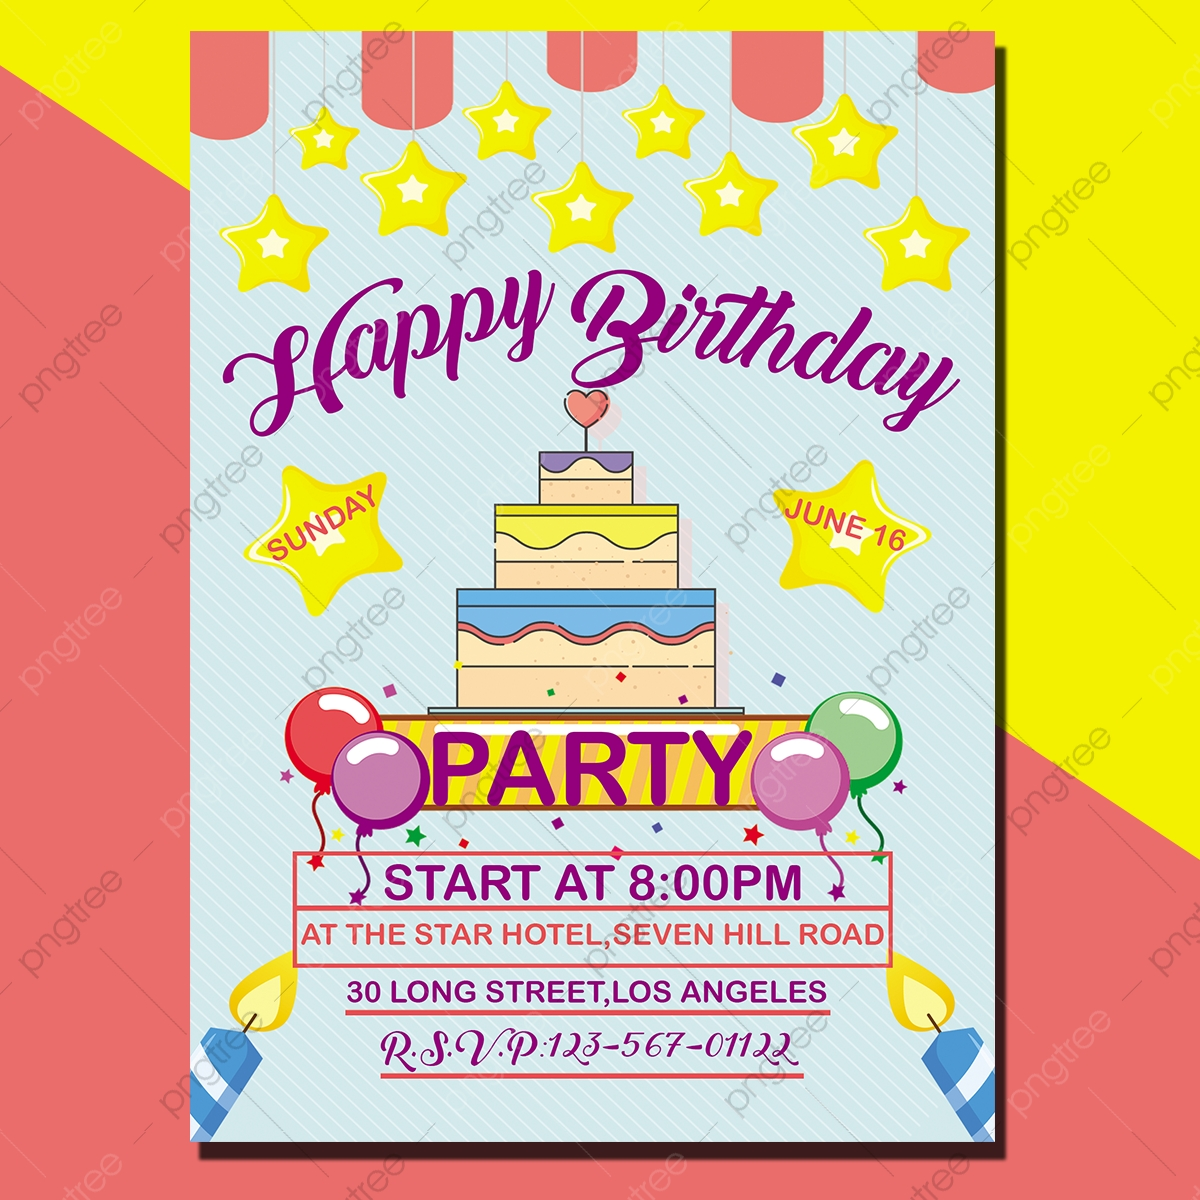 Stars Birthday Invitation Card Template for Free Download on Pngtree